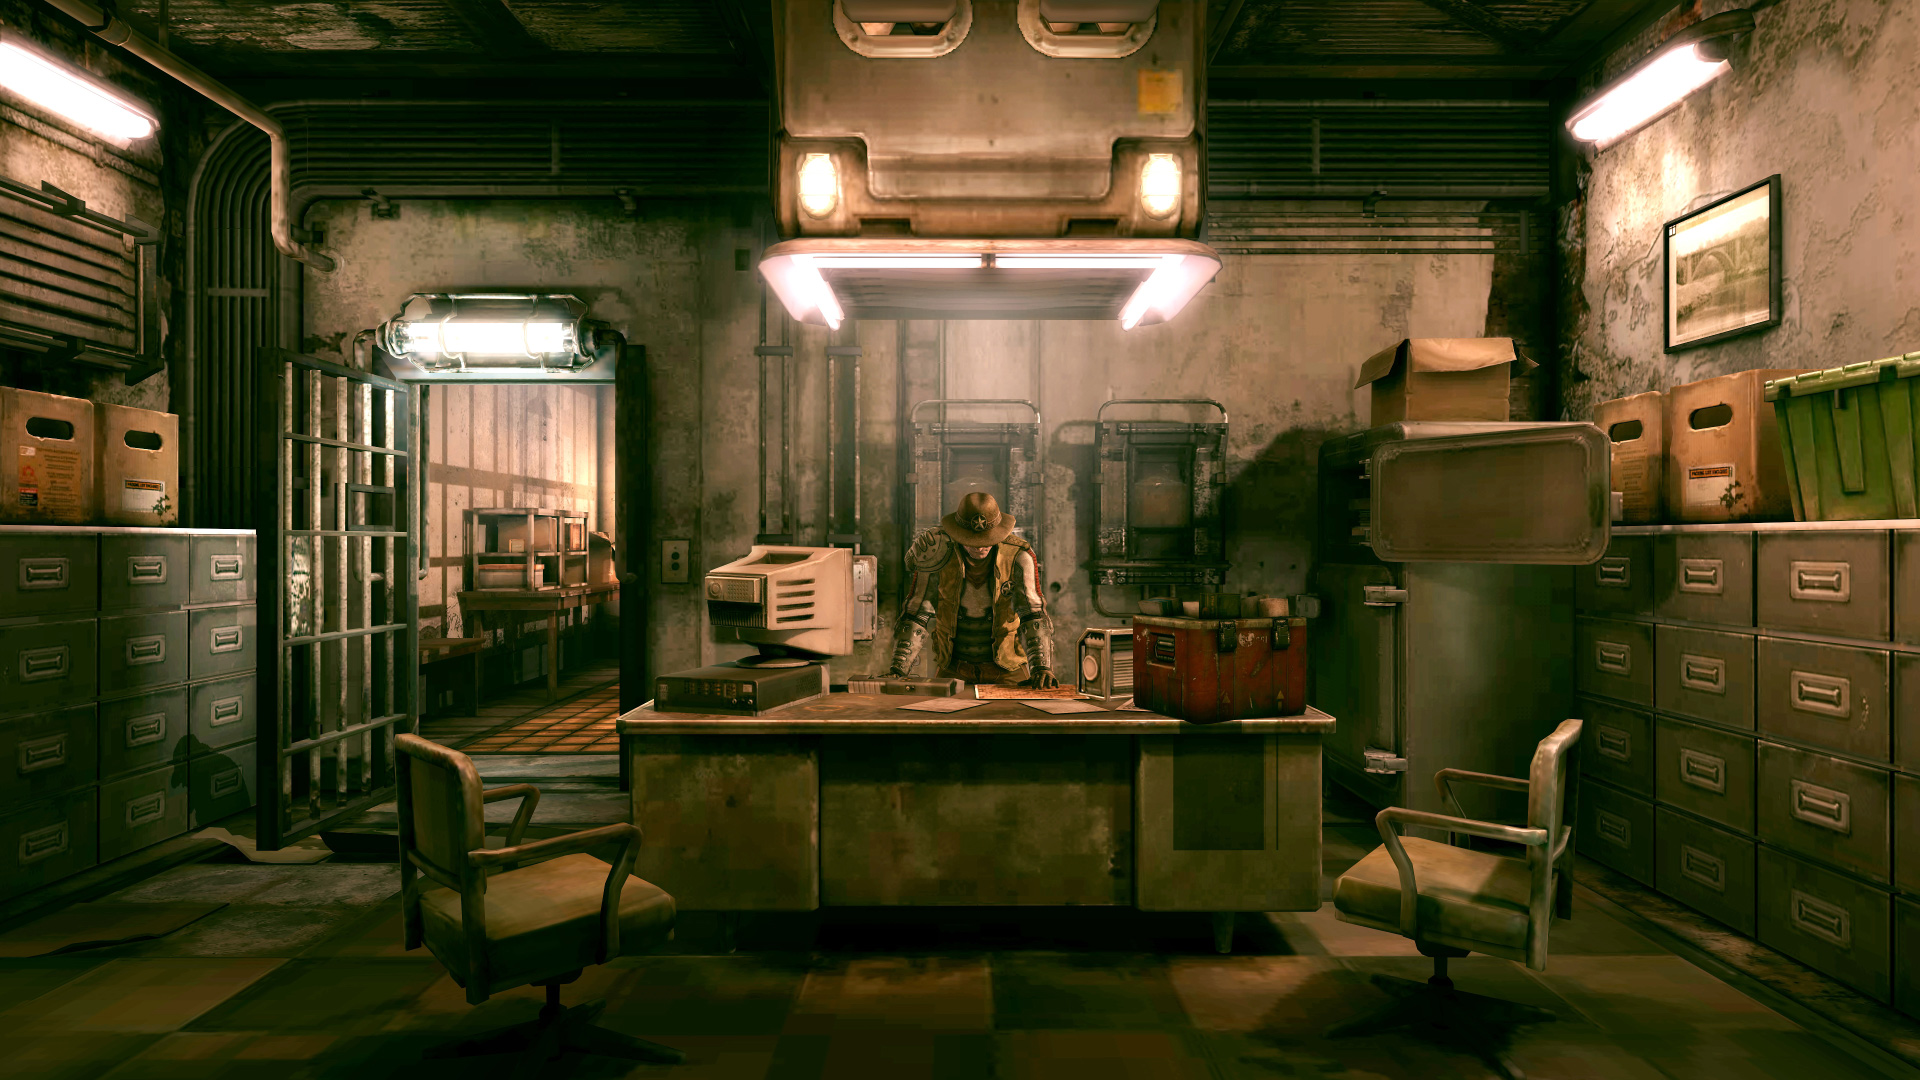 Fallout 4 Wallpaper Hd Rage Full Hd Wallpaper And Background 1920x1080 Id 184748